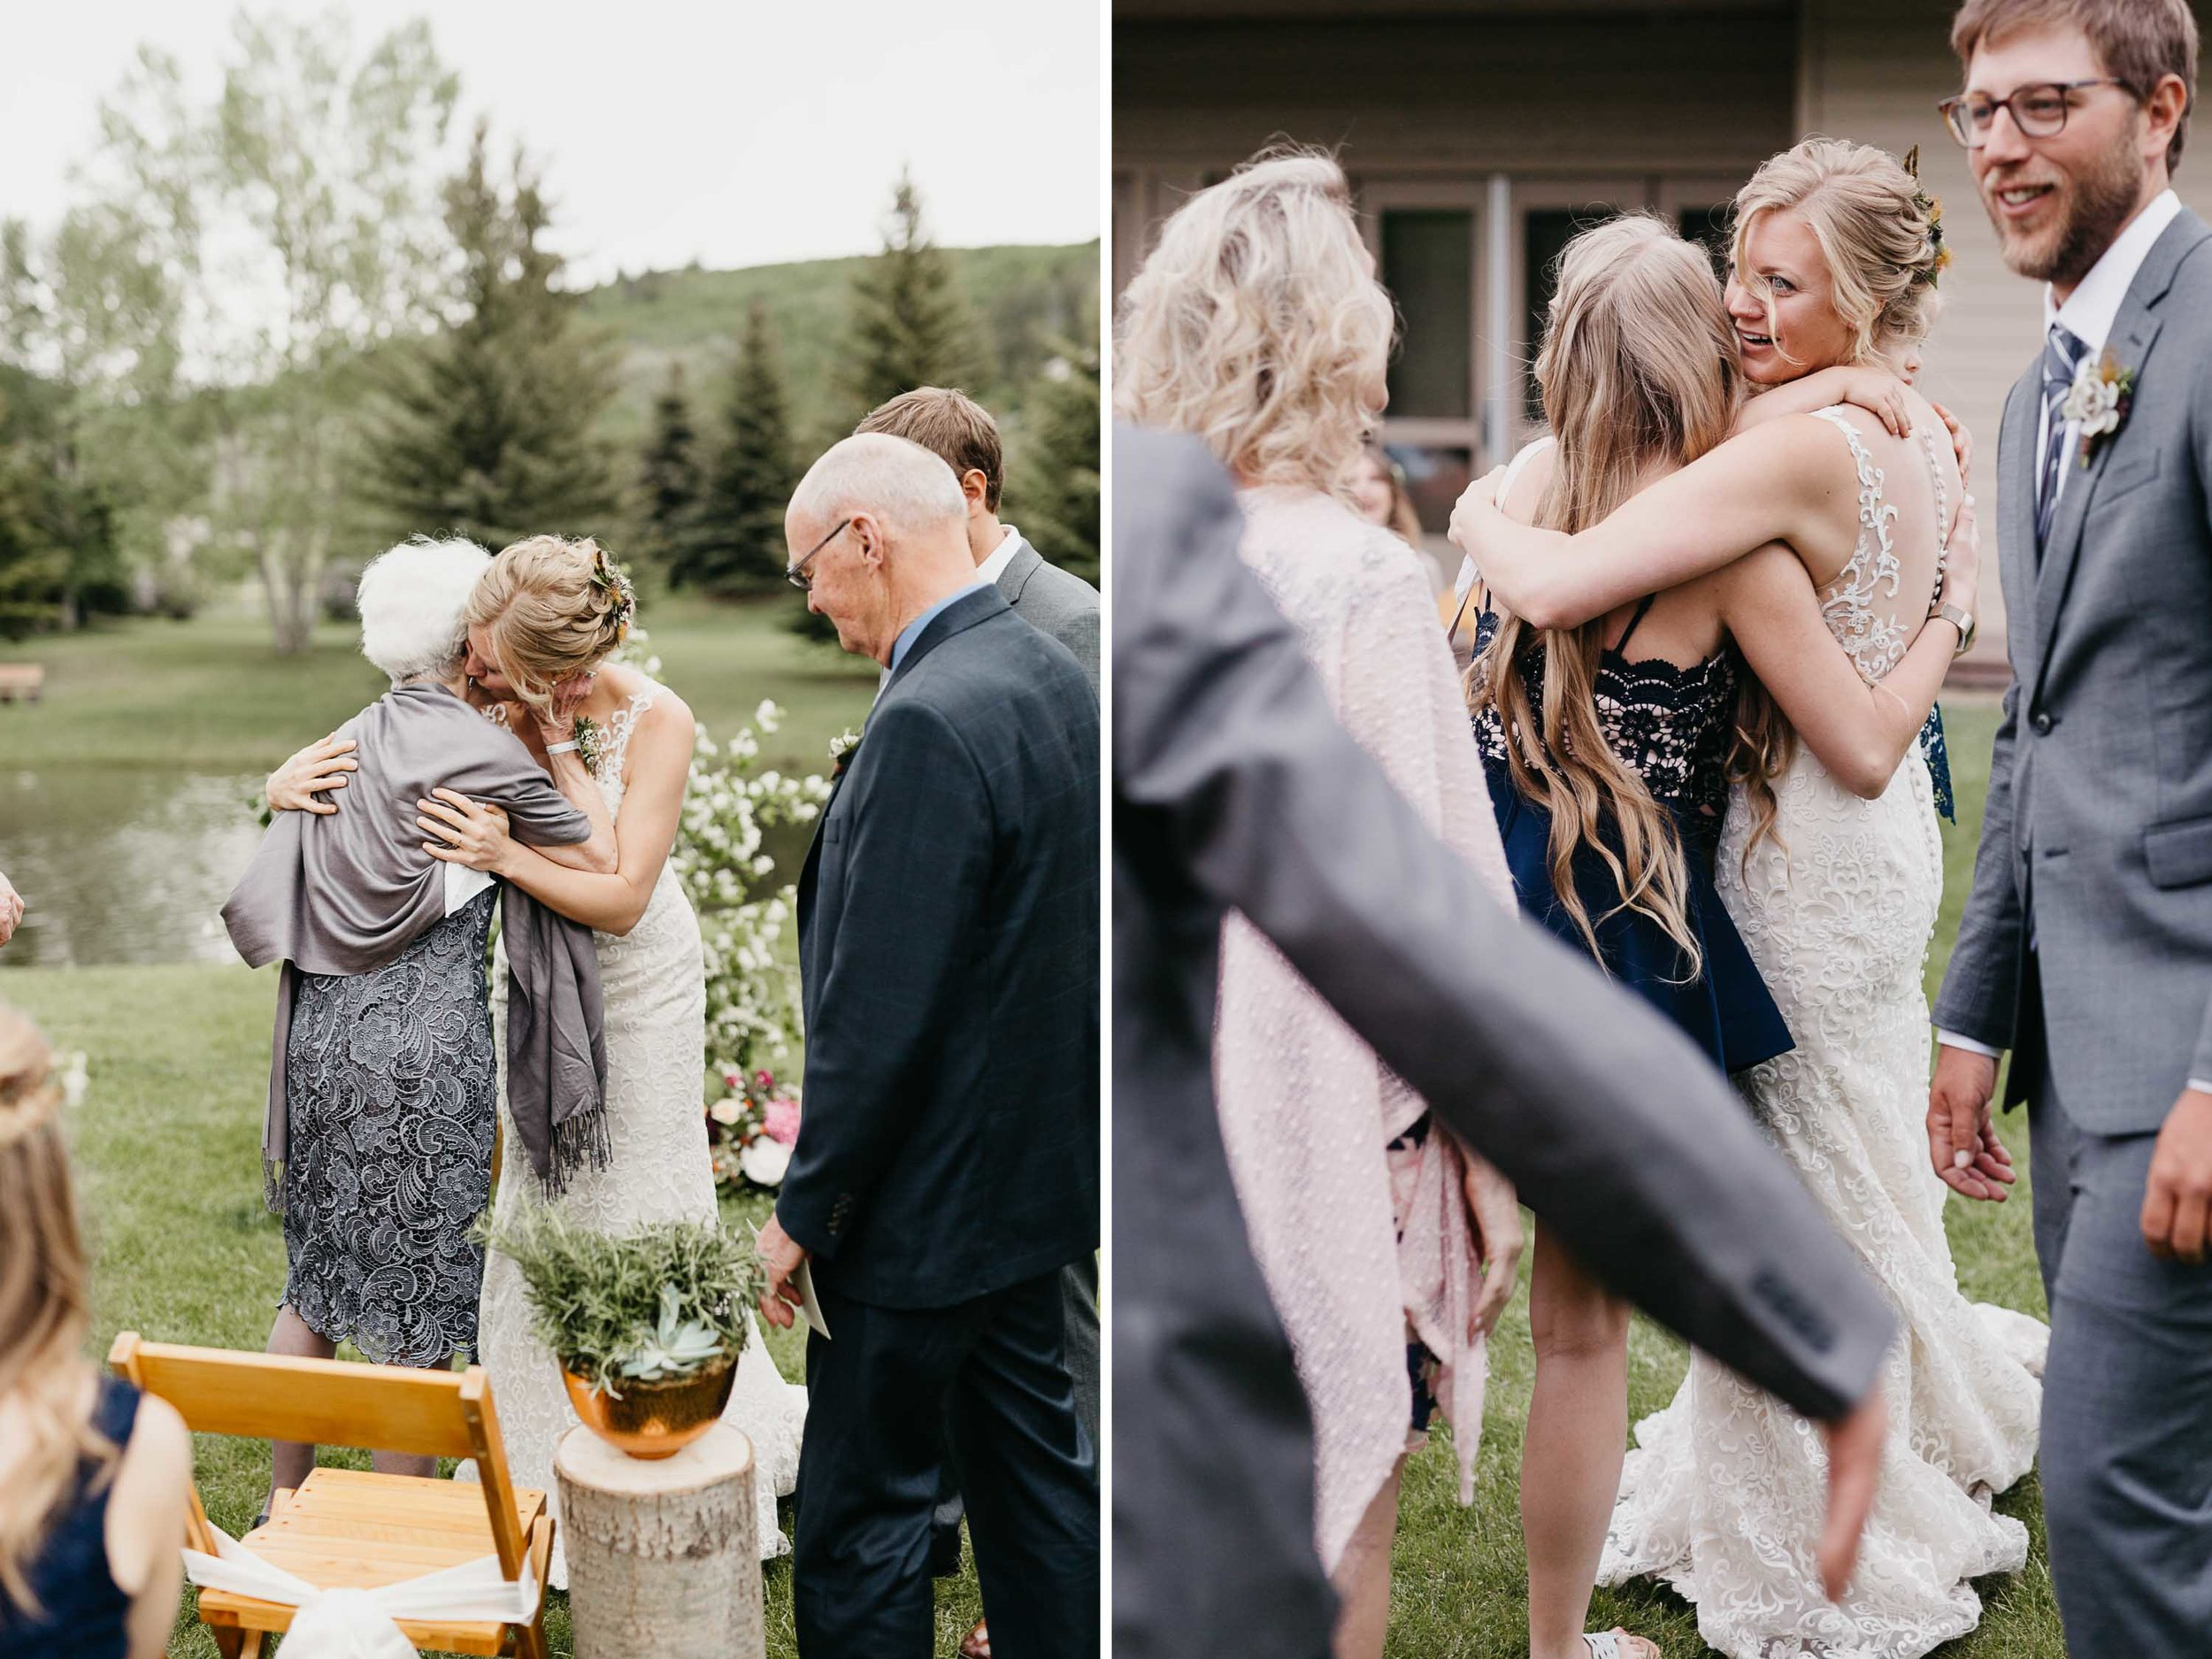 Colorado-Wedding-Photographer-76.jpg